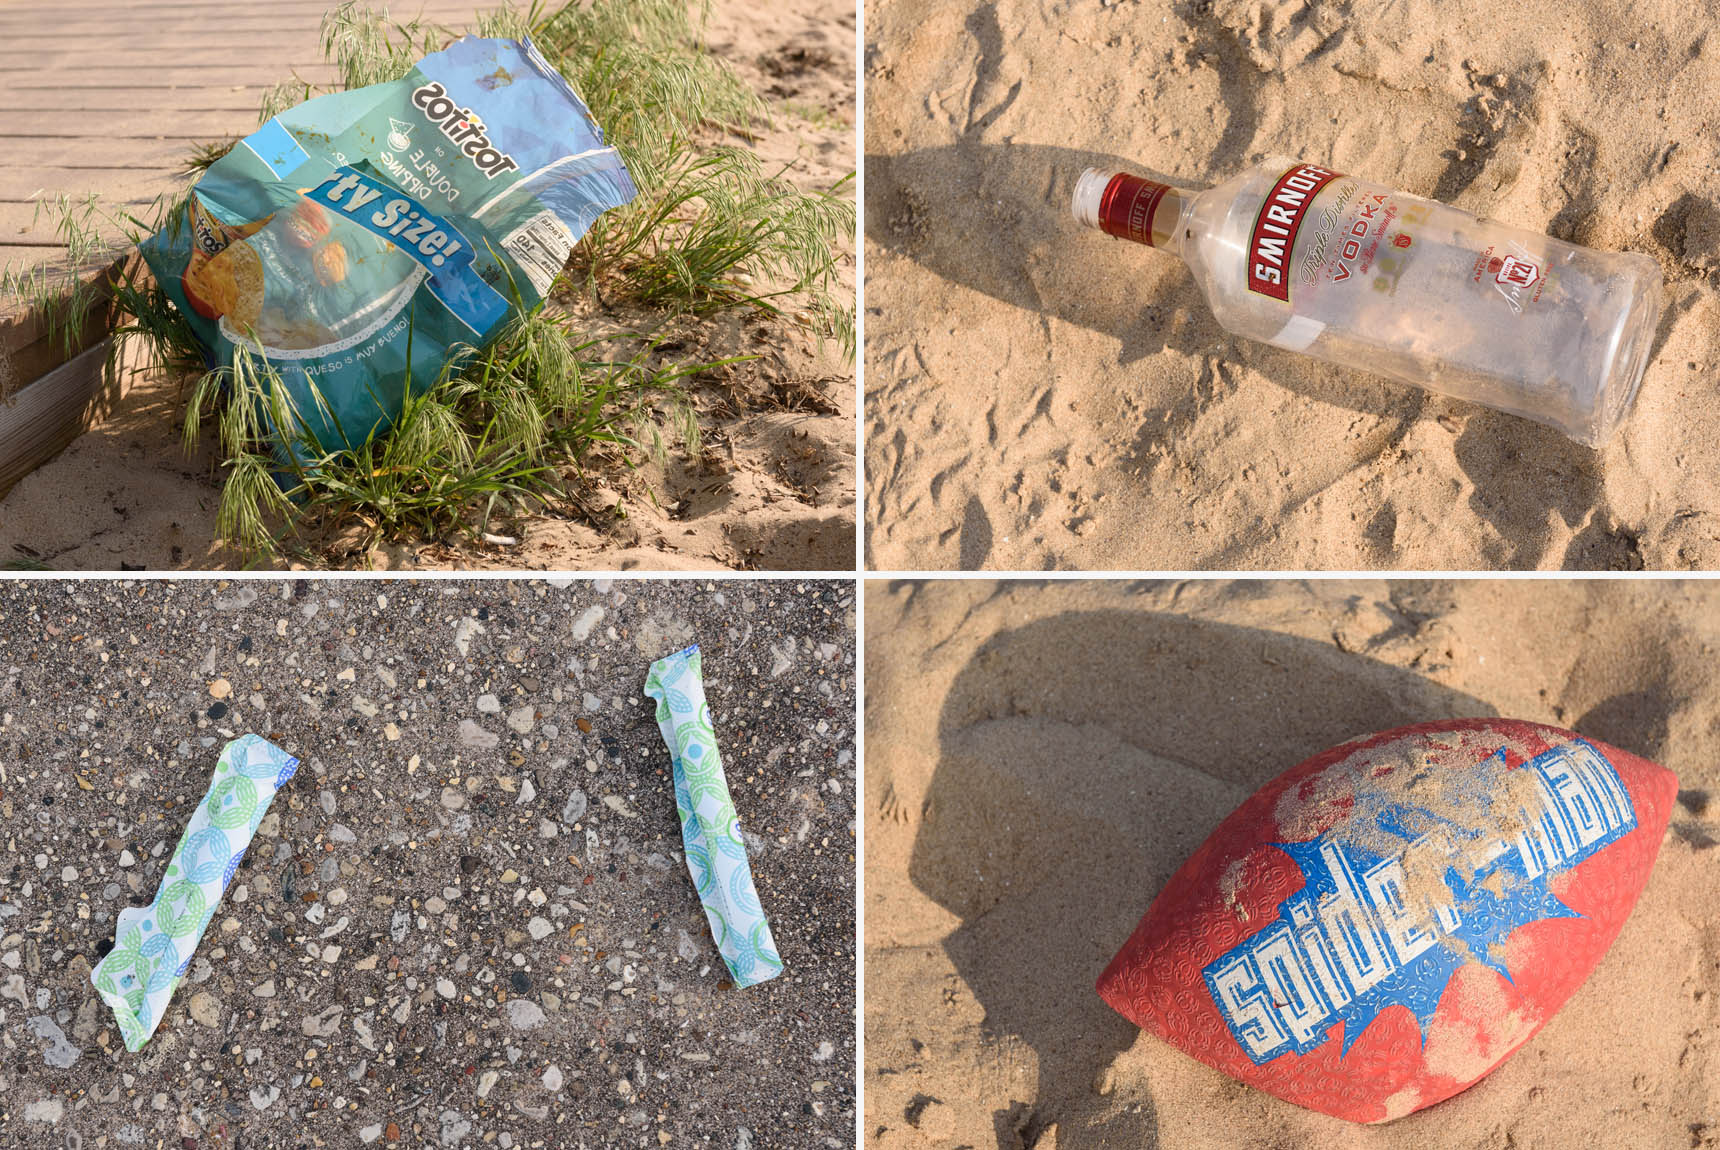 Trash at Kathy Osterman Beach - Stop Trashing Chicago Beaches by Michael Courier